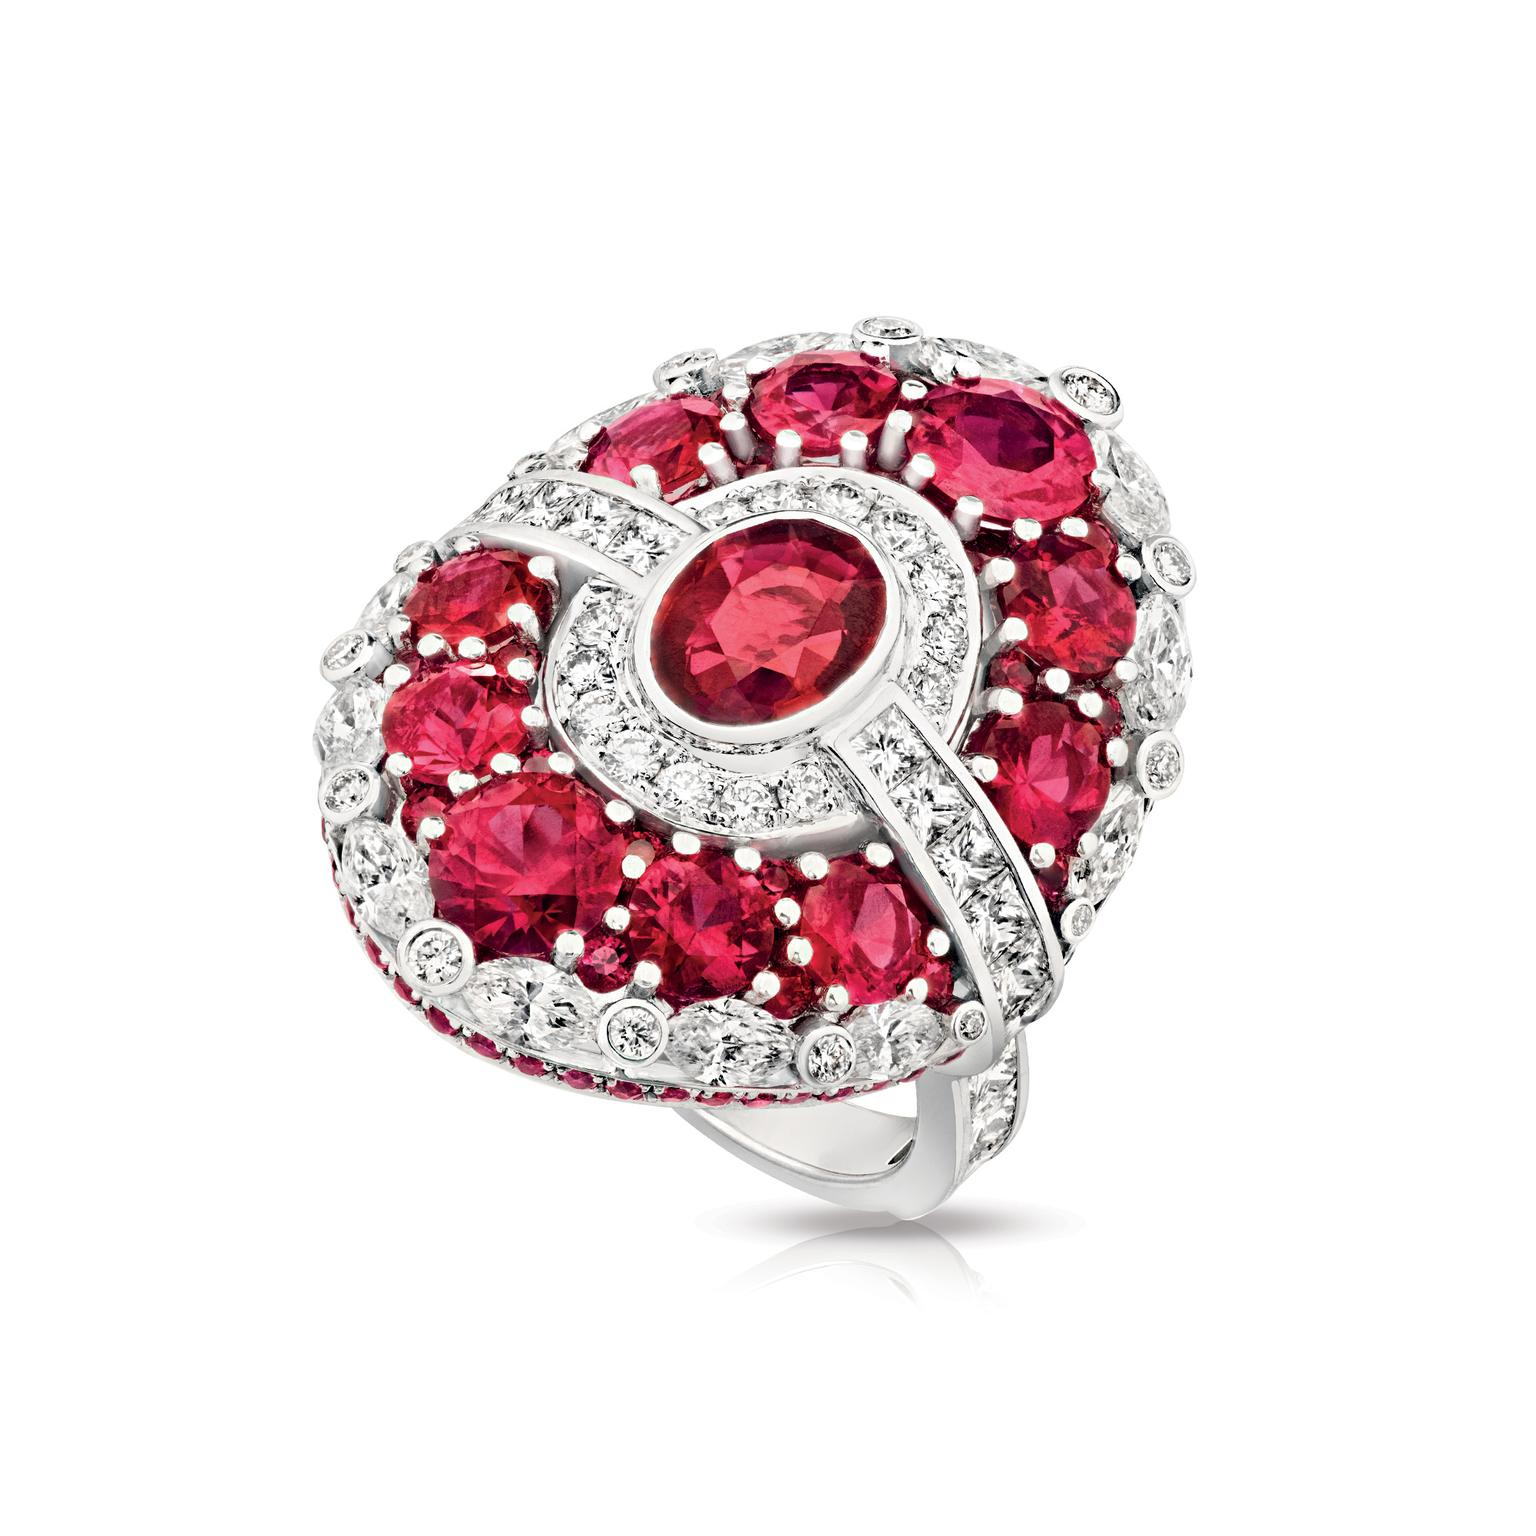 Fabergé Devotion Aurora ruby ring